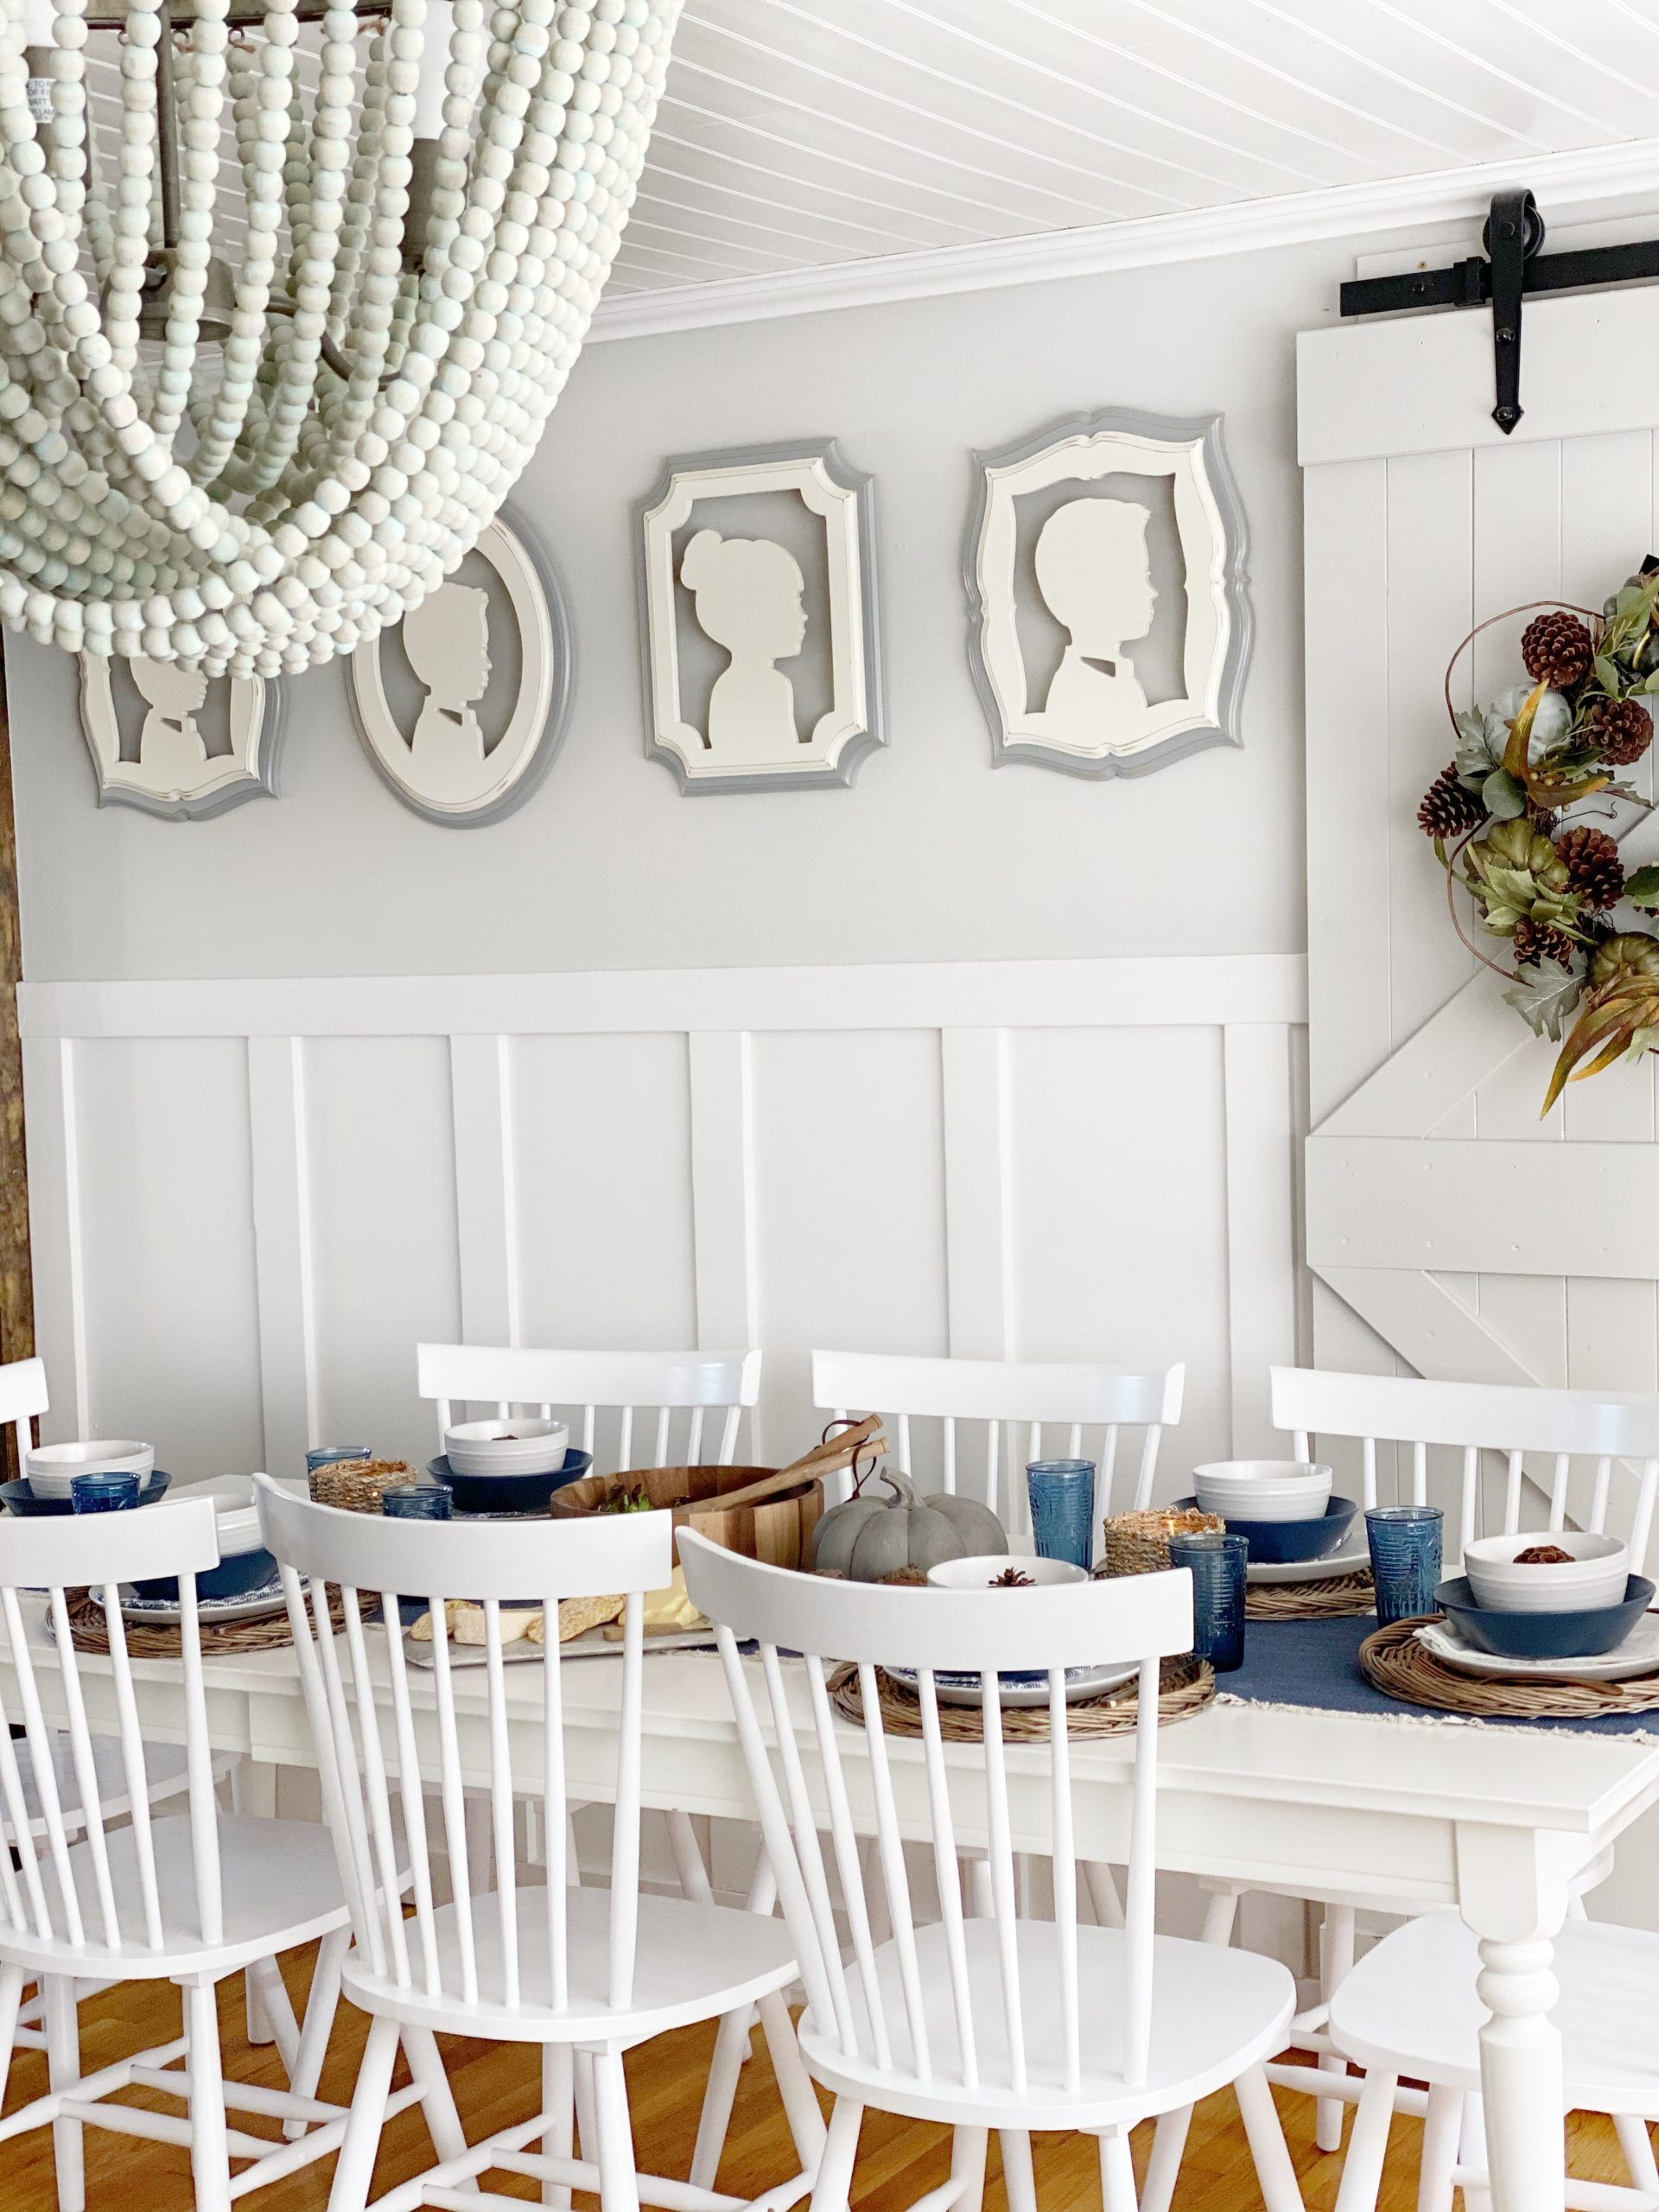 Fall Decor Ideas Bed Bath Beyond In 2020 Cottage Dining Rooms Decor Bed Bath And Beyond